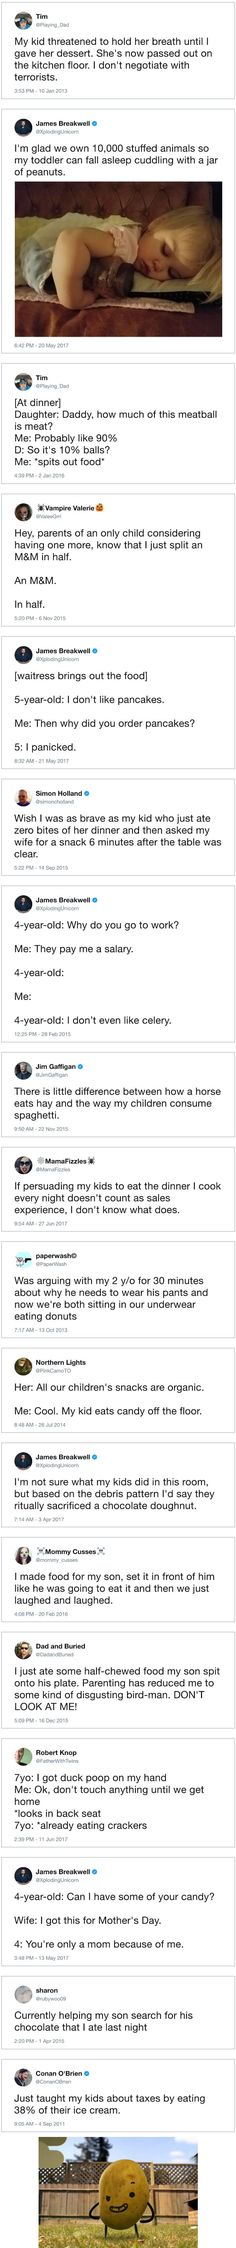 Parents vs. Mealtime